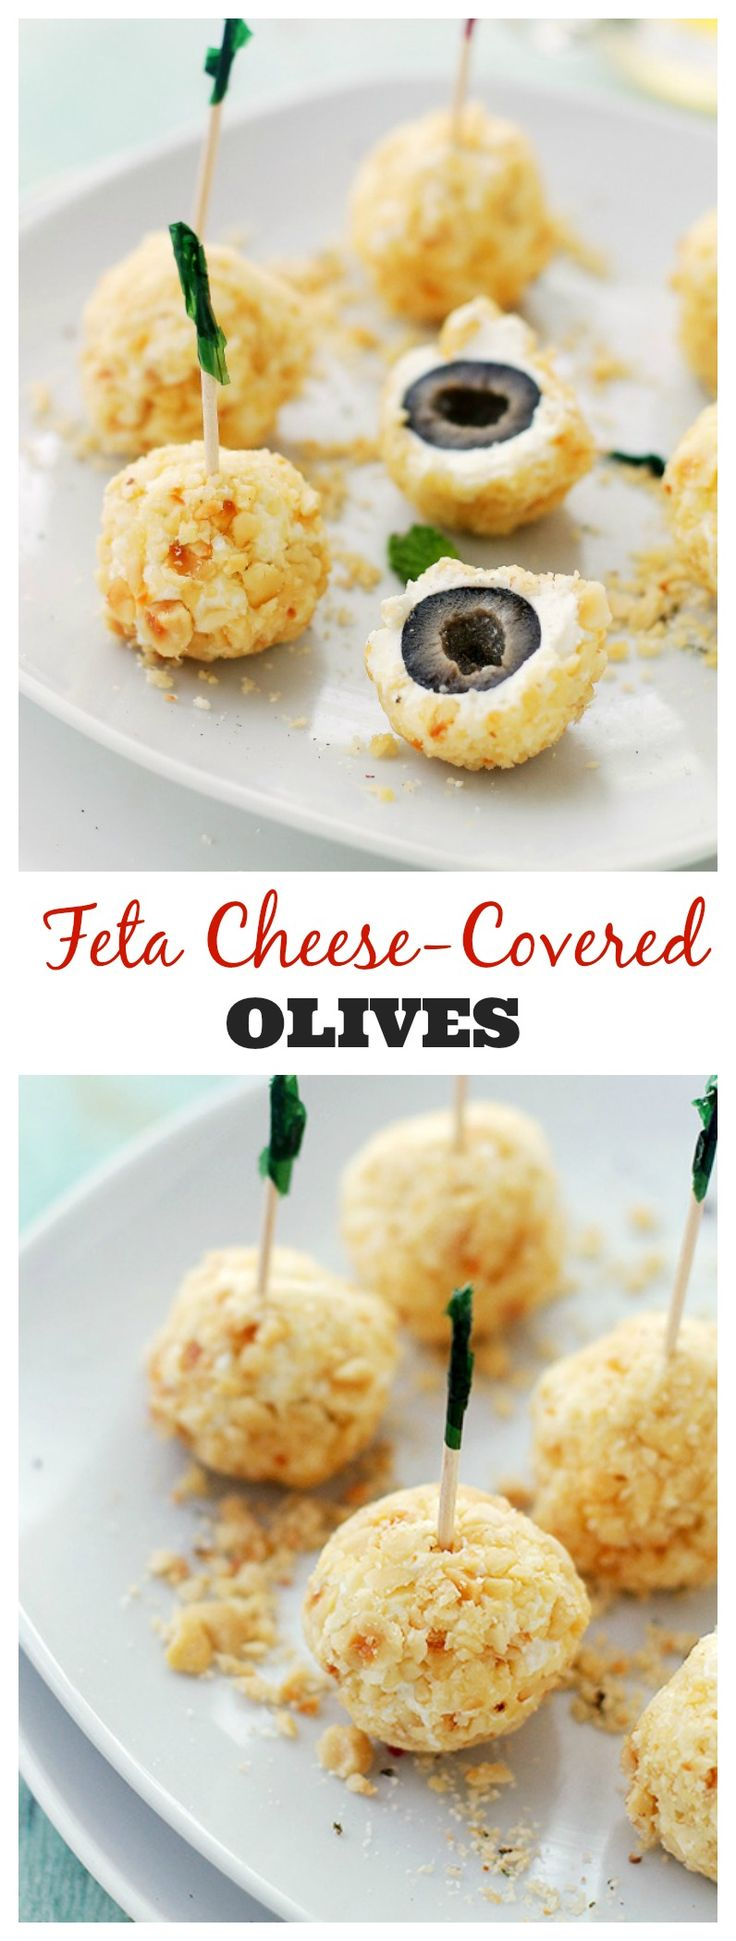 Feta Cheese-Covered Olives | www.diethood.com | A fun and incredibly flavorful appetizer made with olives covered in a feta cheese mixture and rolled in crushed hazelnuts. | #recipes #appetizers #CalRipeOlives